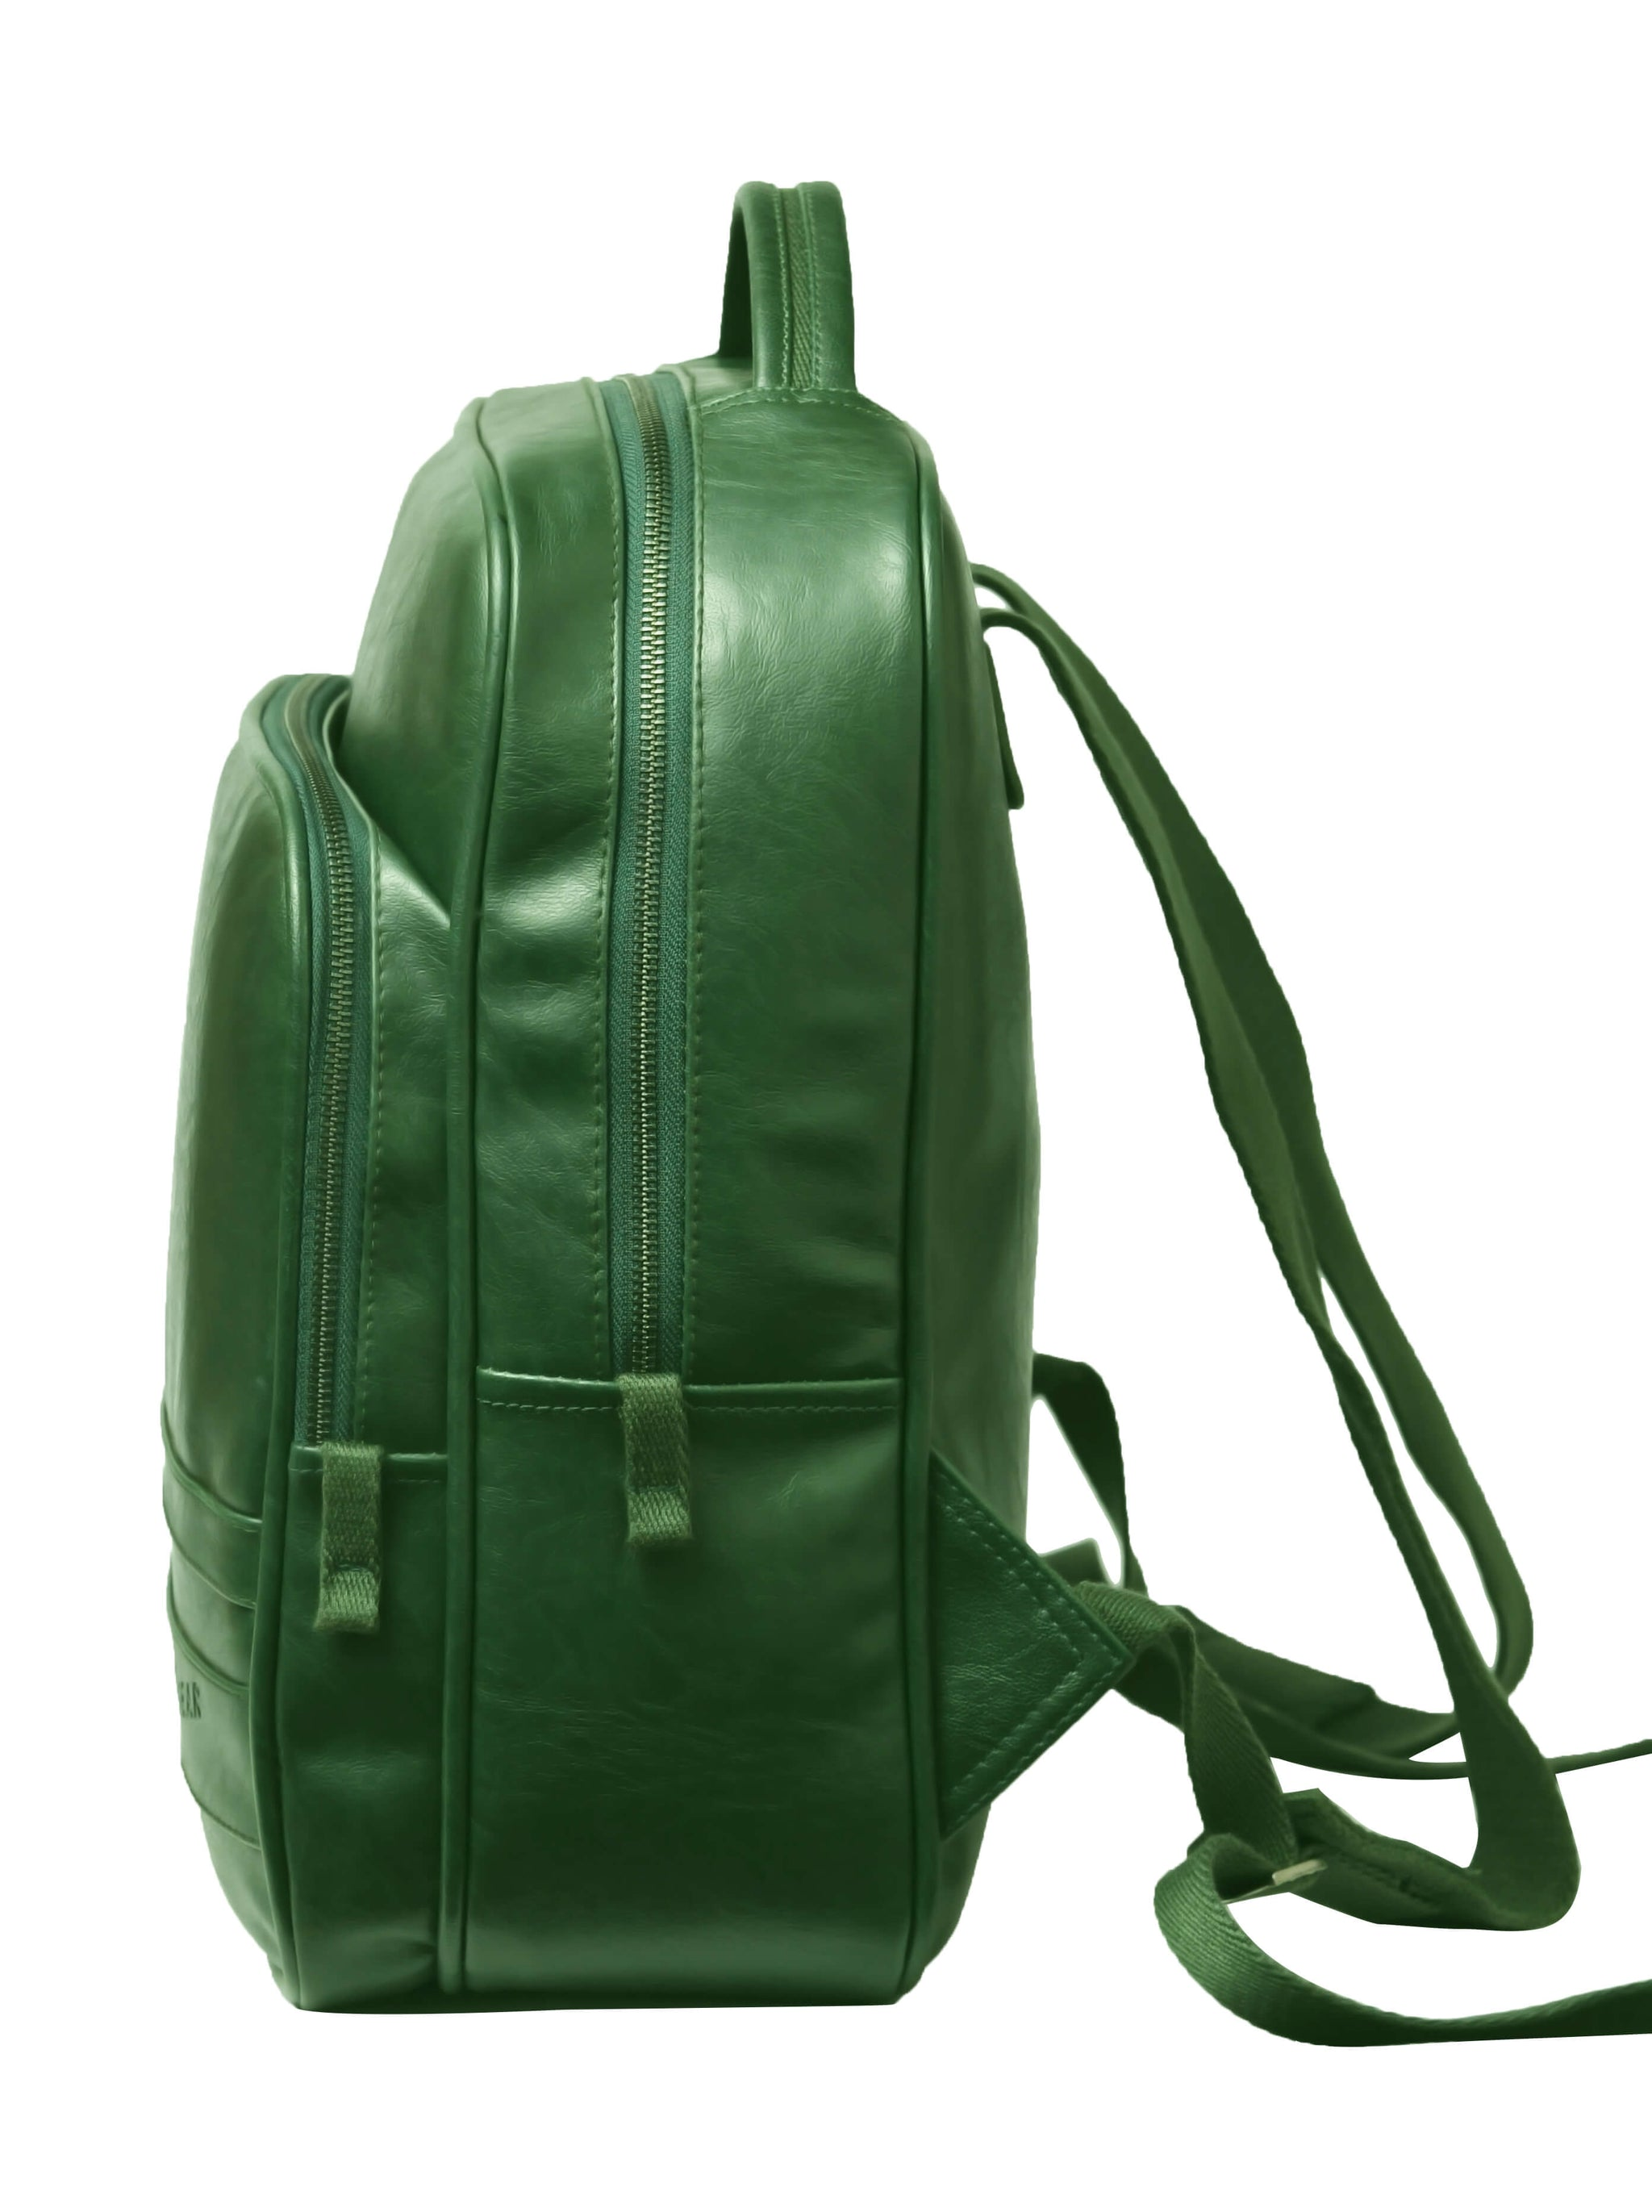 F Gear Belden Luxur 18 Ltrs Backpack (Bottle Green)